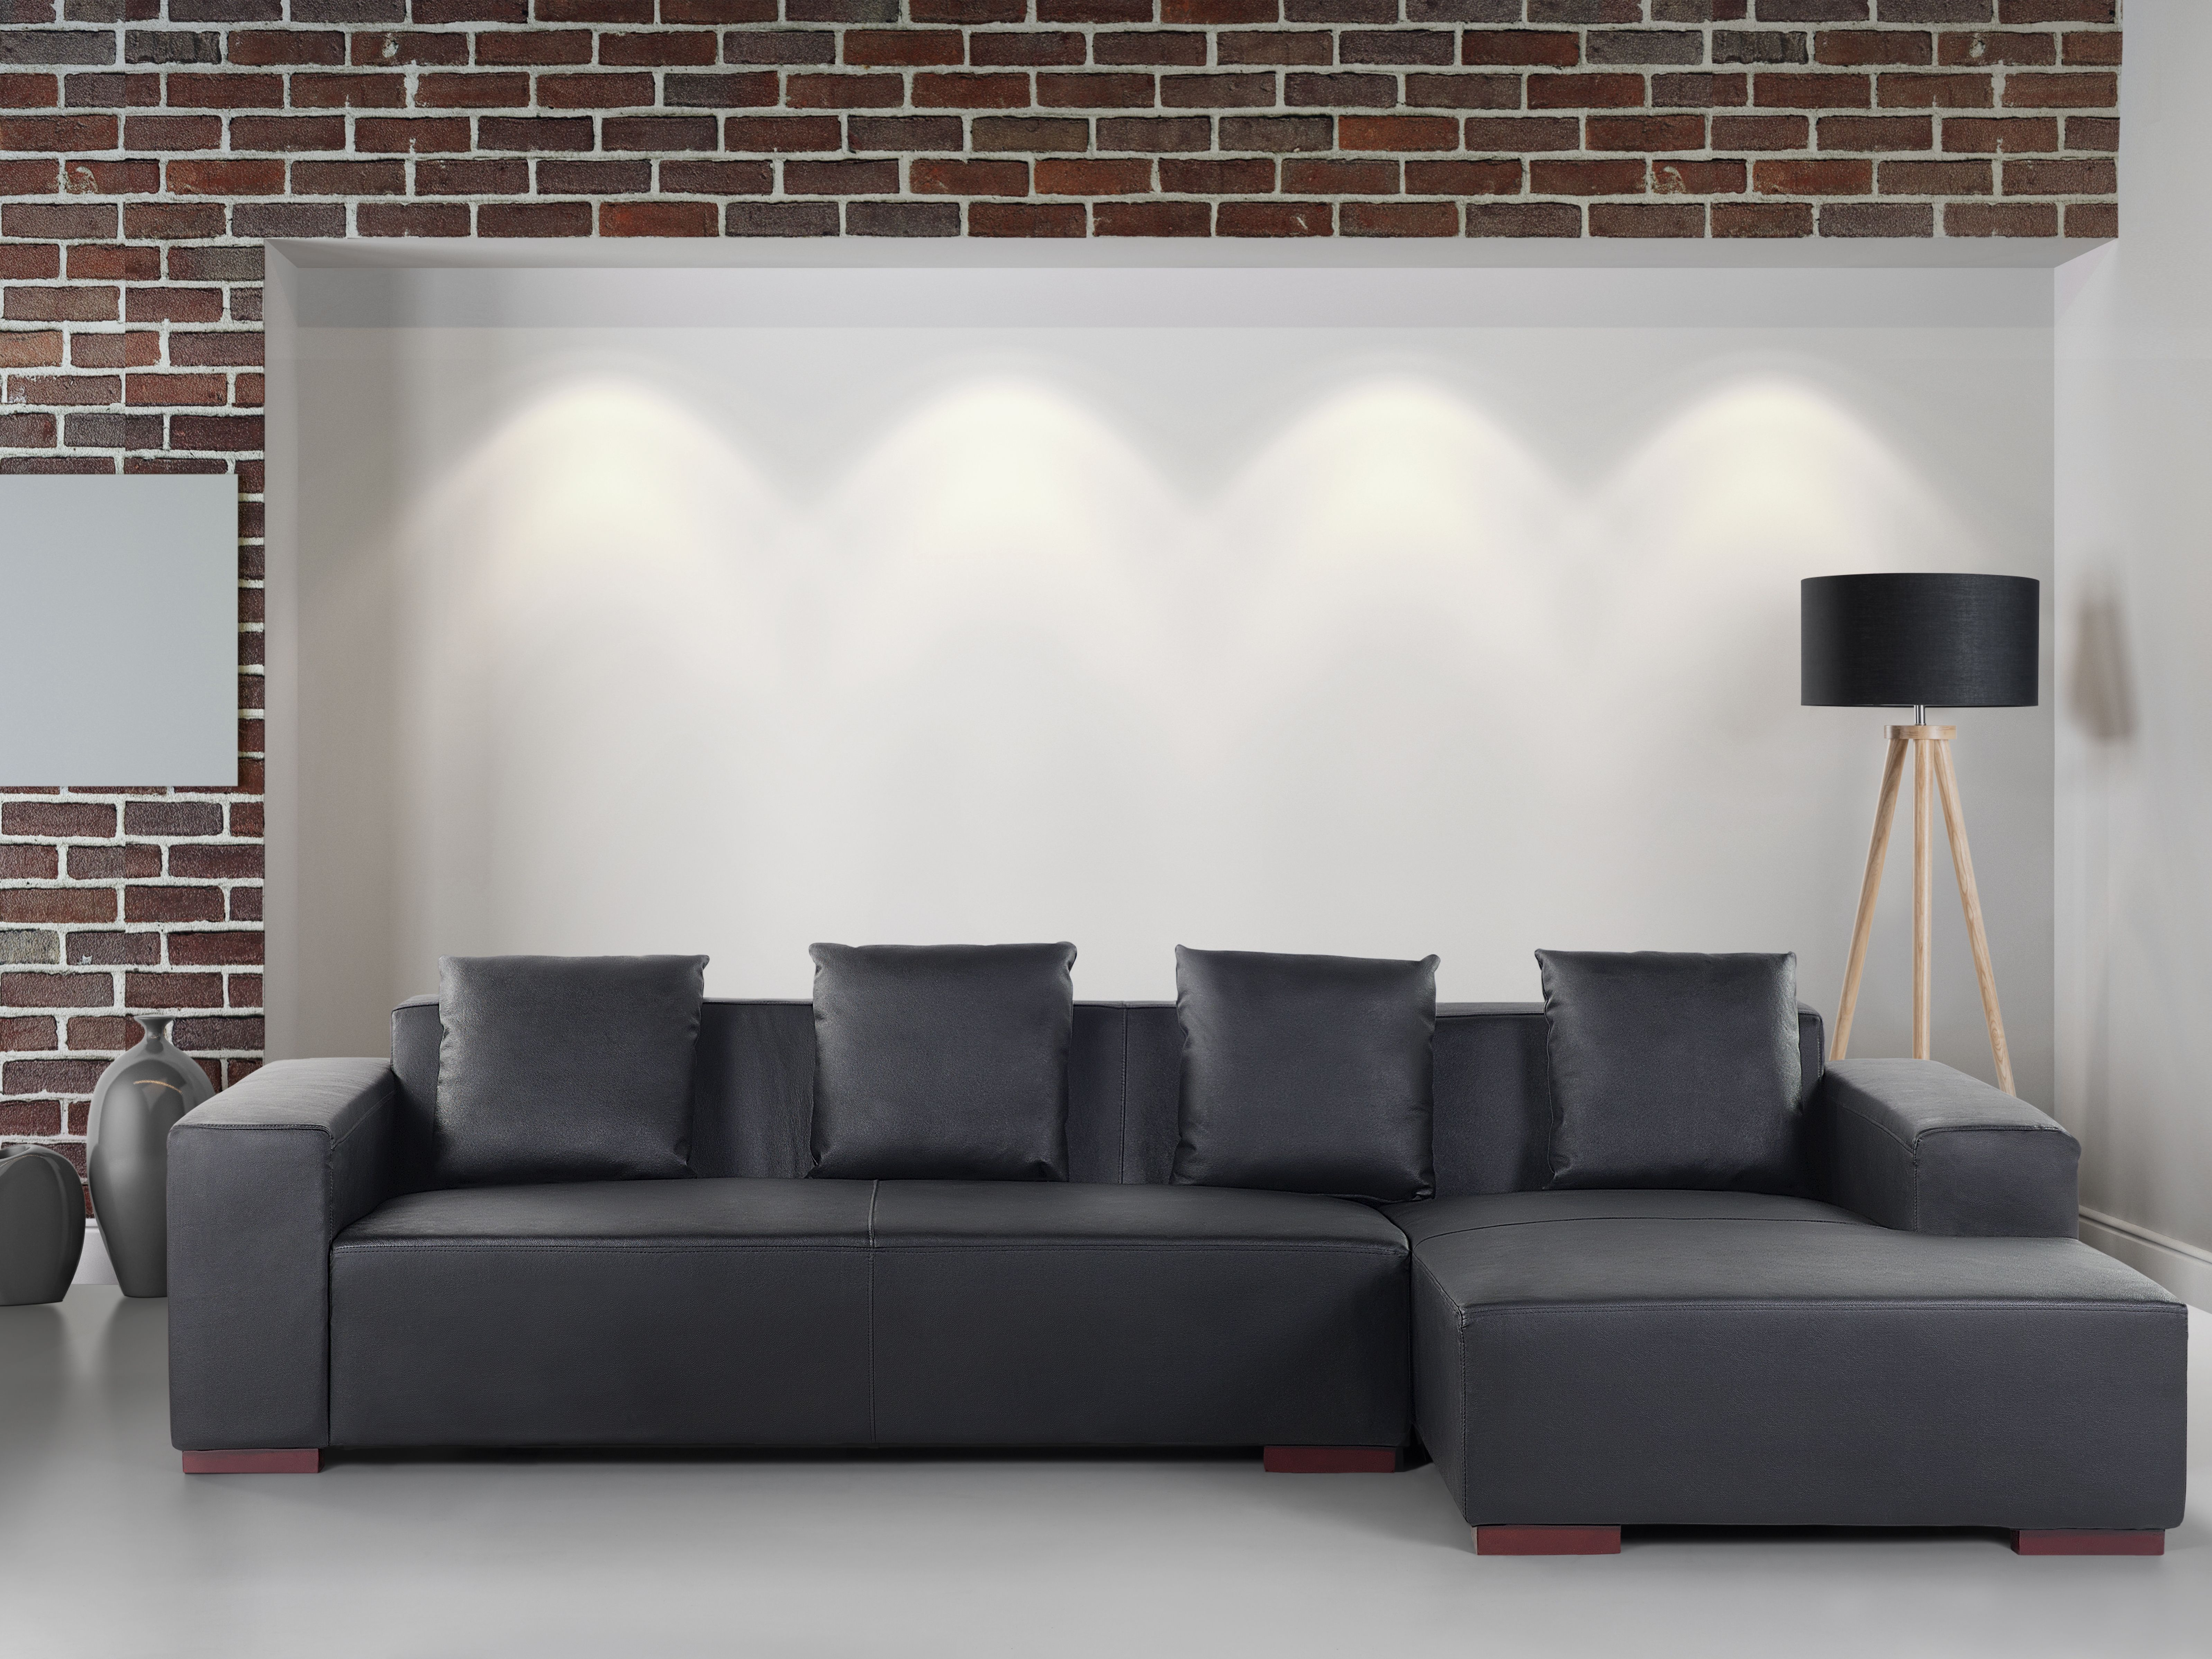 cool Low Profile Sectional Sofa  Fancy Low Profile Sectional Sofa 66 With Additional Modern Sofa : low profile sectional sofas - Sectionals, Sofas & Couches